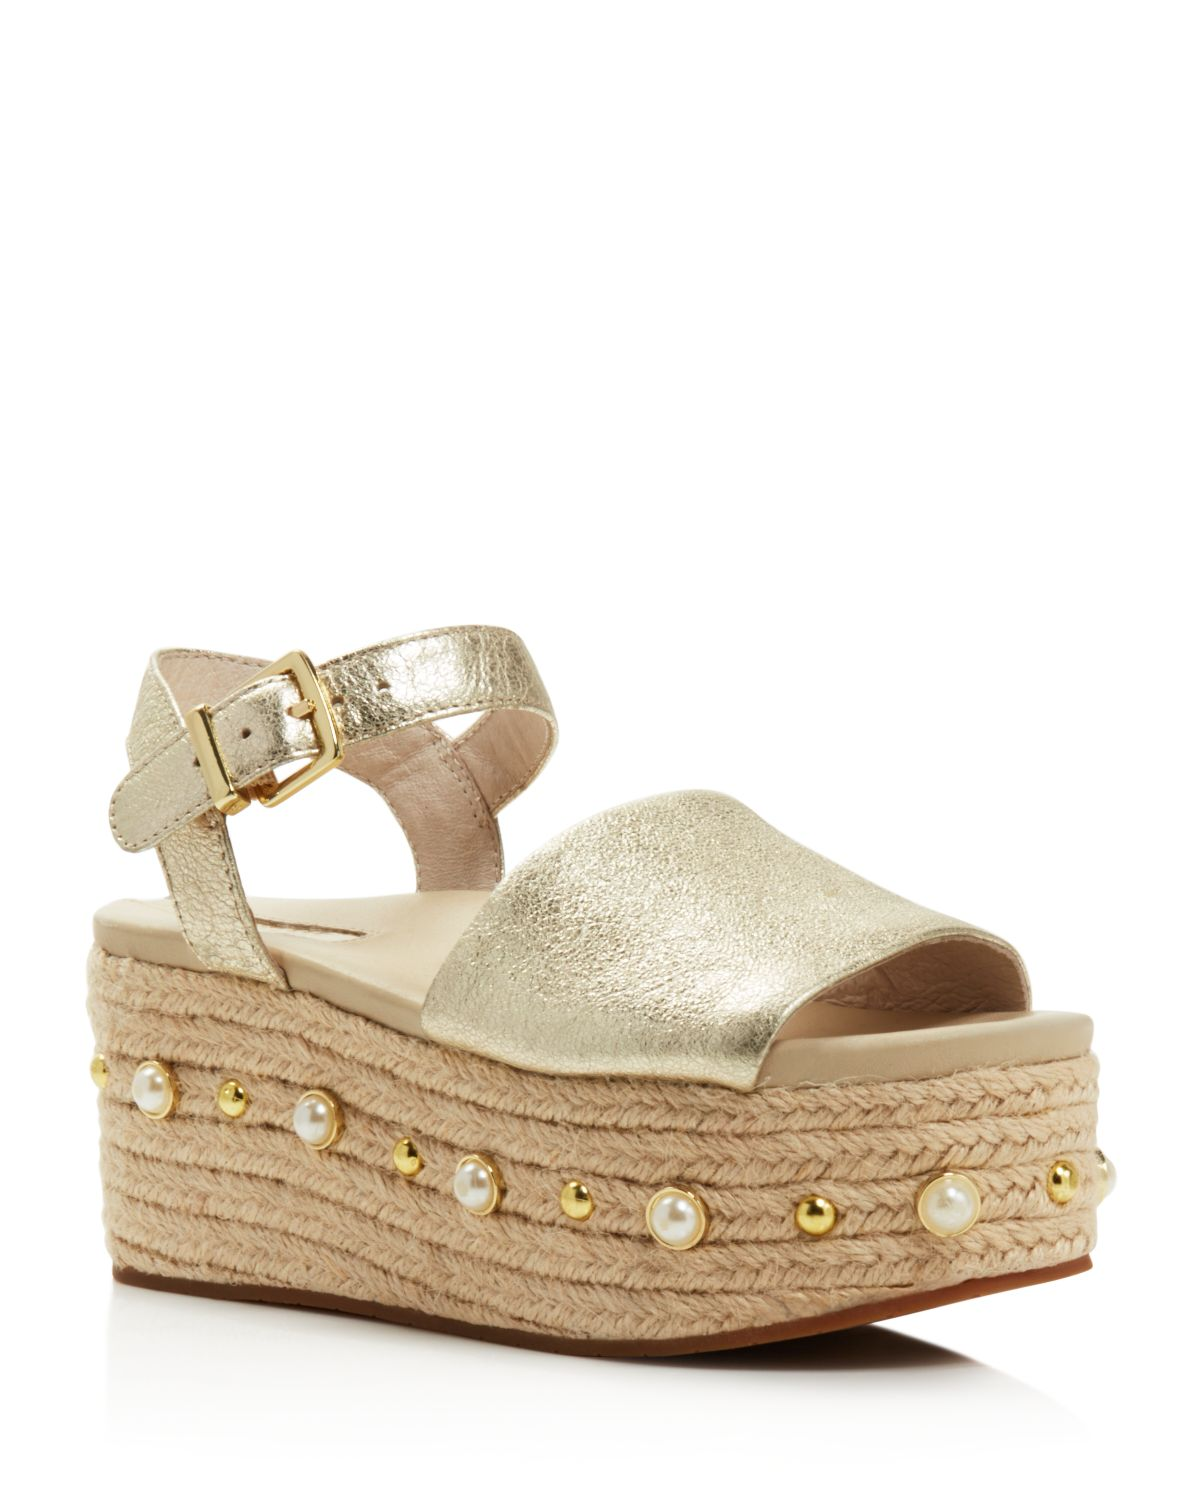 Kenneth Cole Women's Indra Leather Embellished Espadrille Platform Wedge Sandals